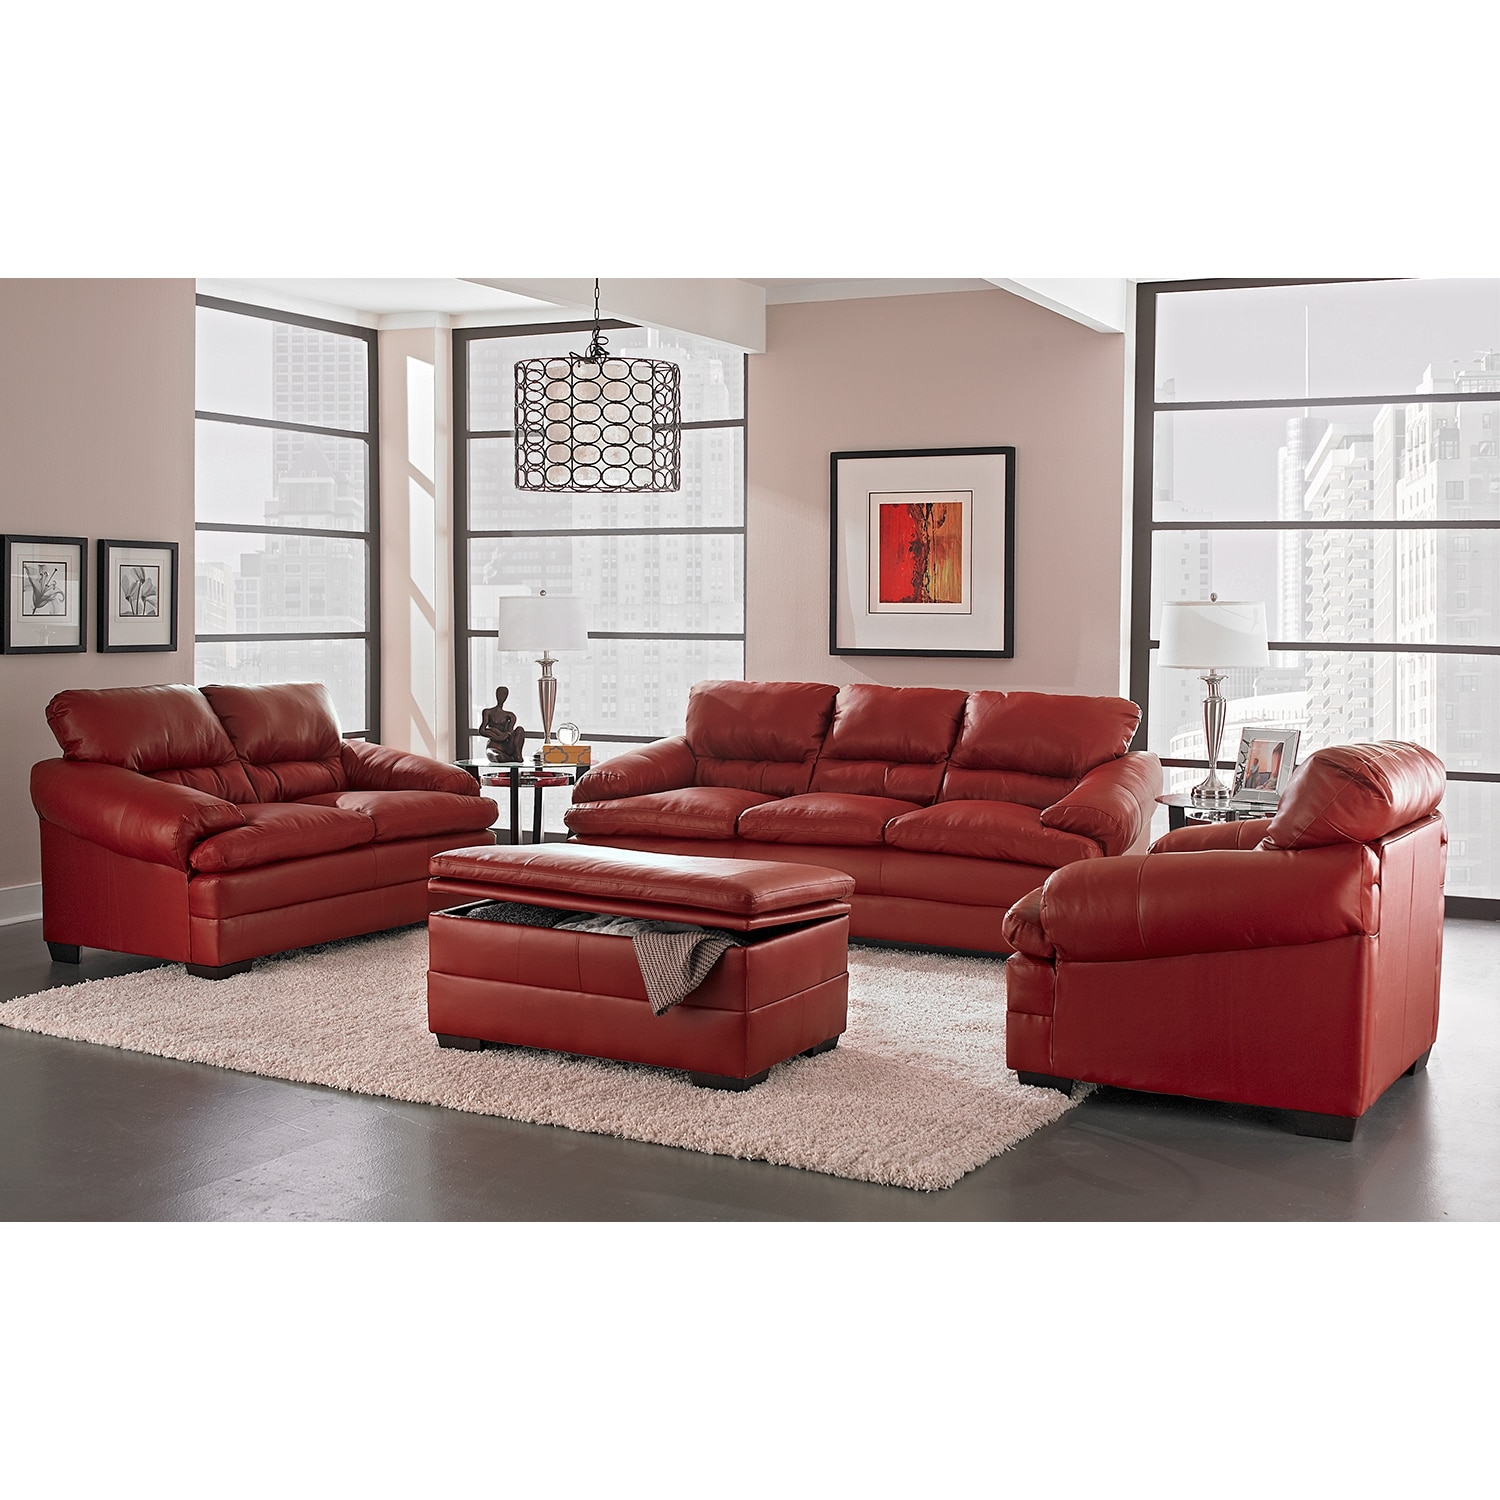 city furniture living room set value city furniture leather living room sets 18597